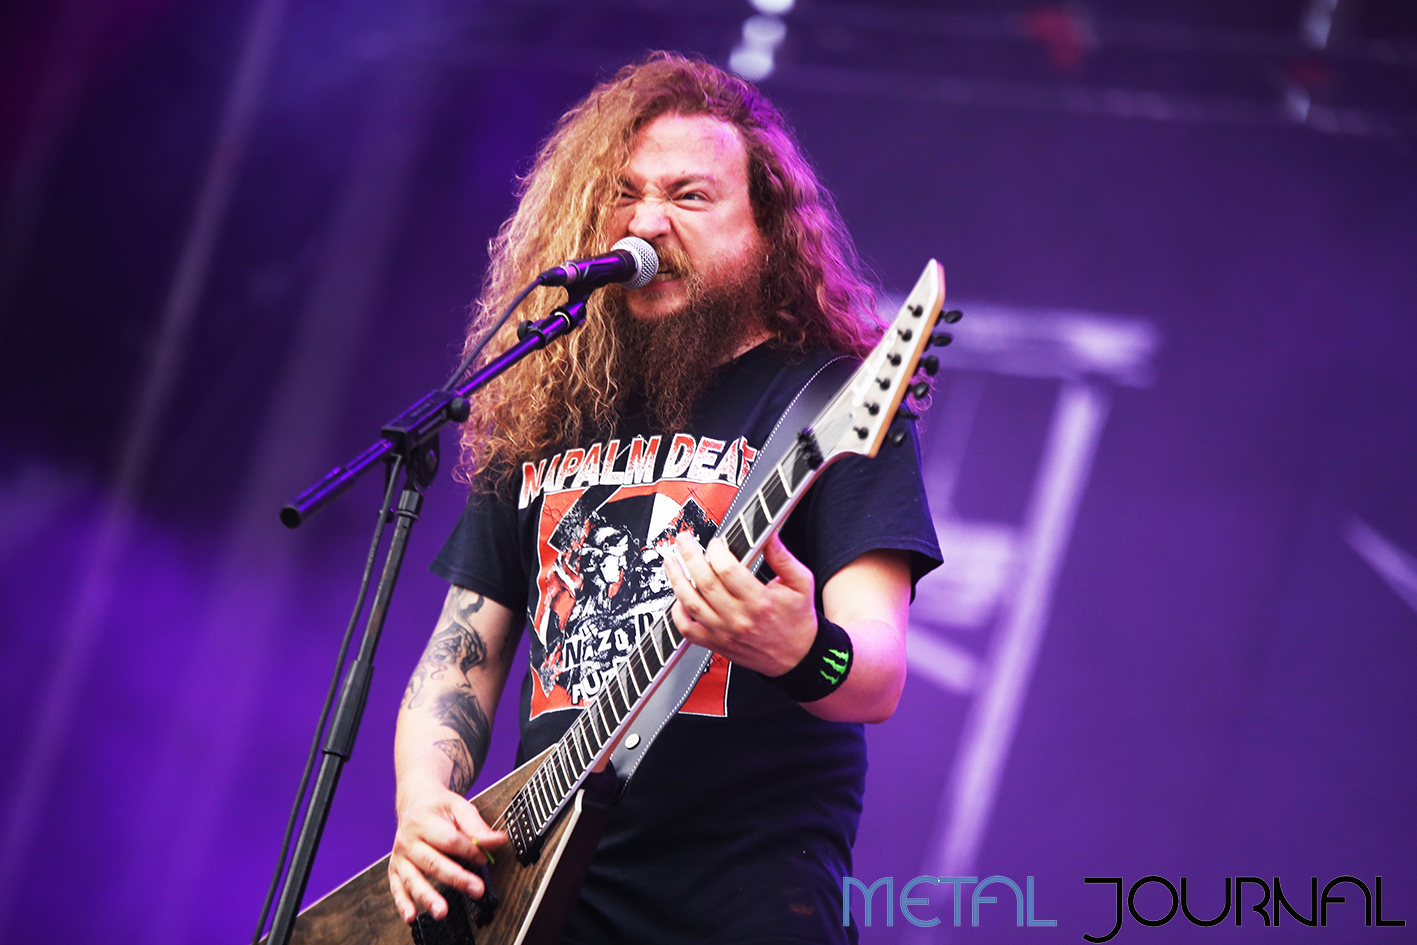 angelus apatrida - metal journal rock fest barcelona 2019 pic 6